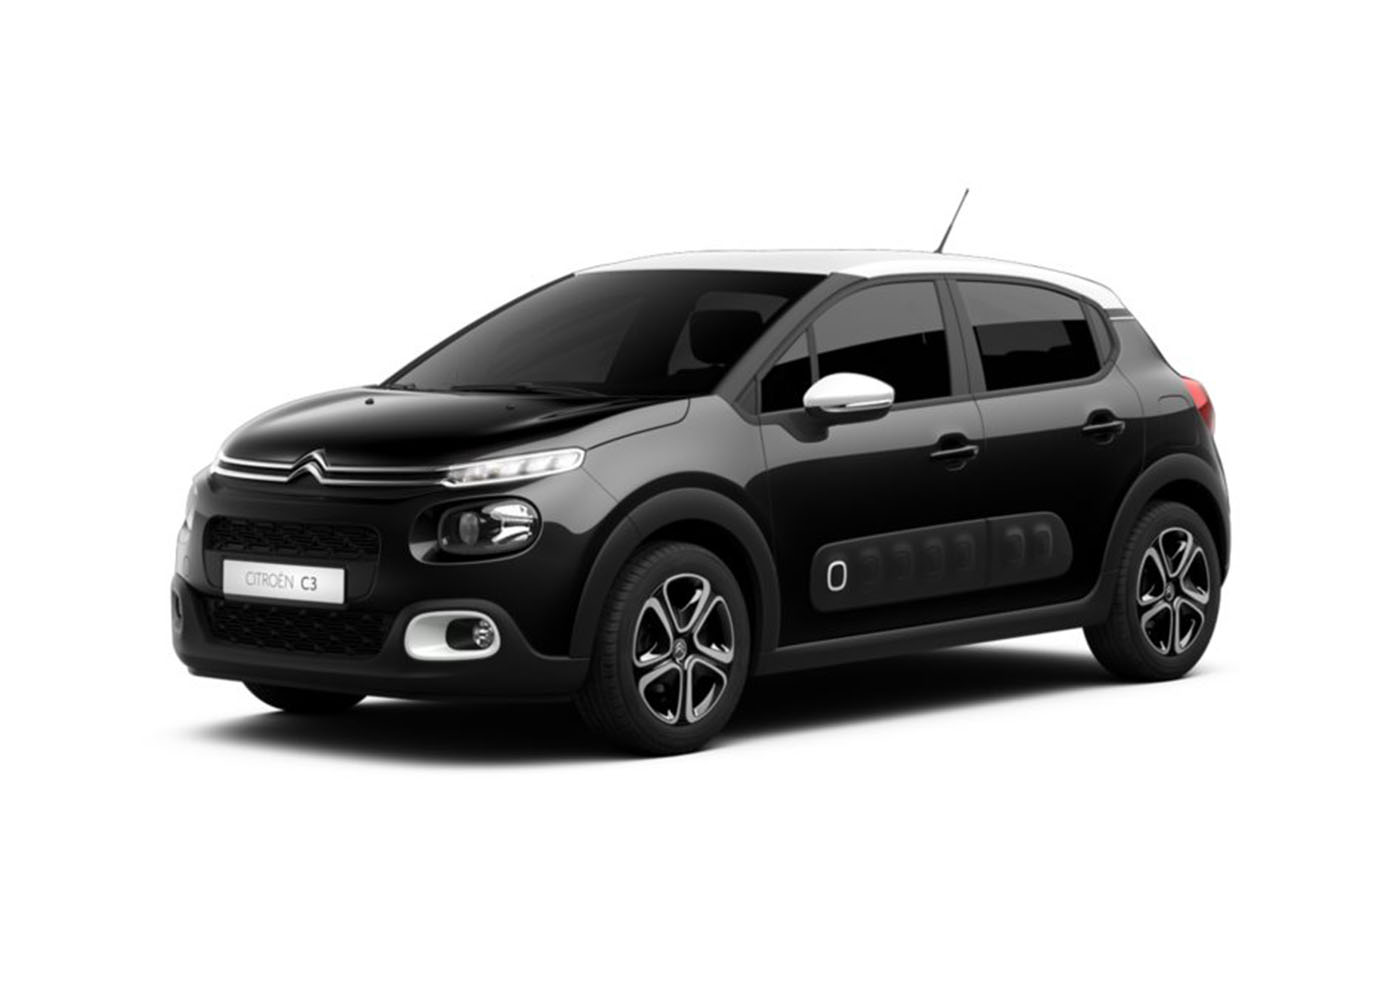 citroen c3 puretech 82 gpl feel night black nuova a soli 15260 su miacar g0kag. Black Bedroom Furniture Sets. Home Design Ideas